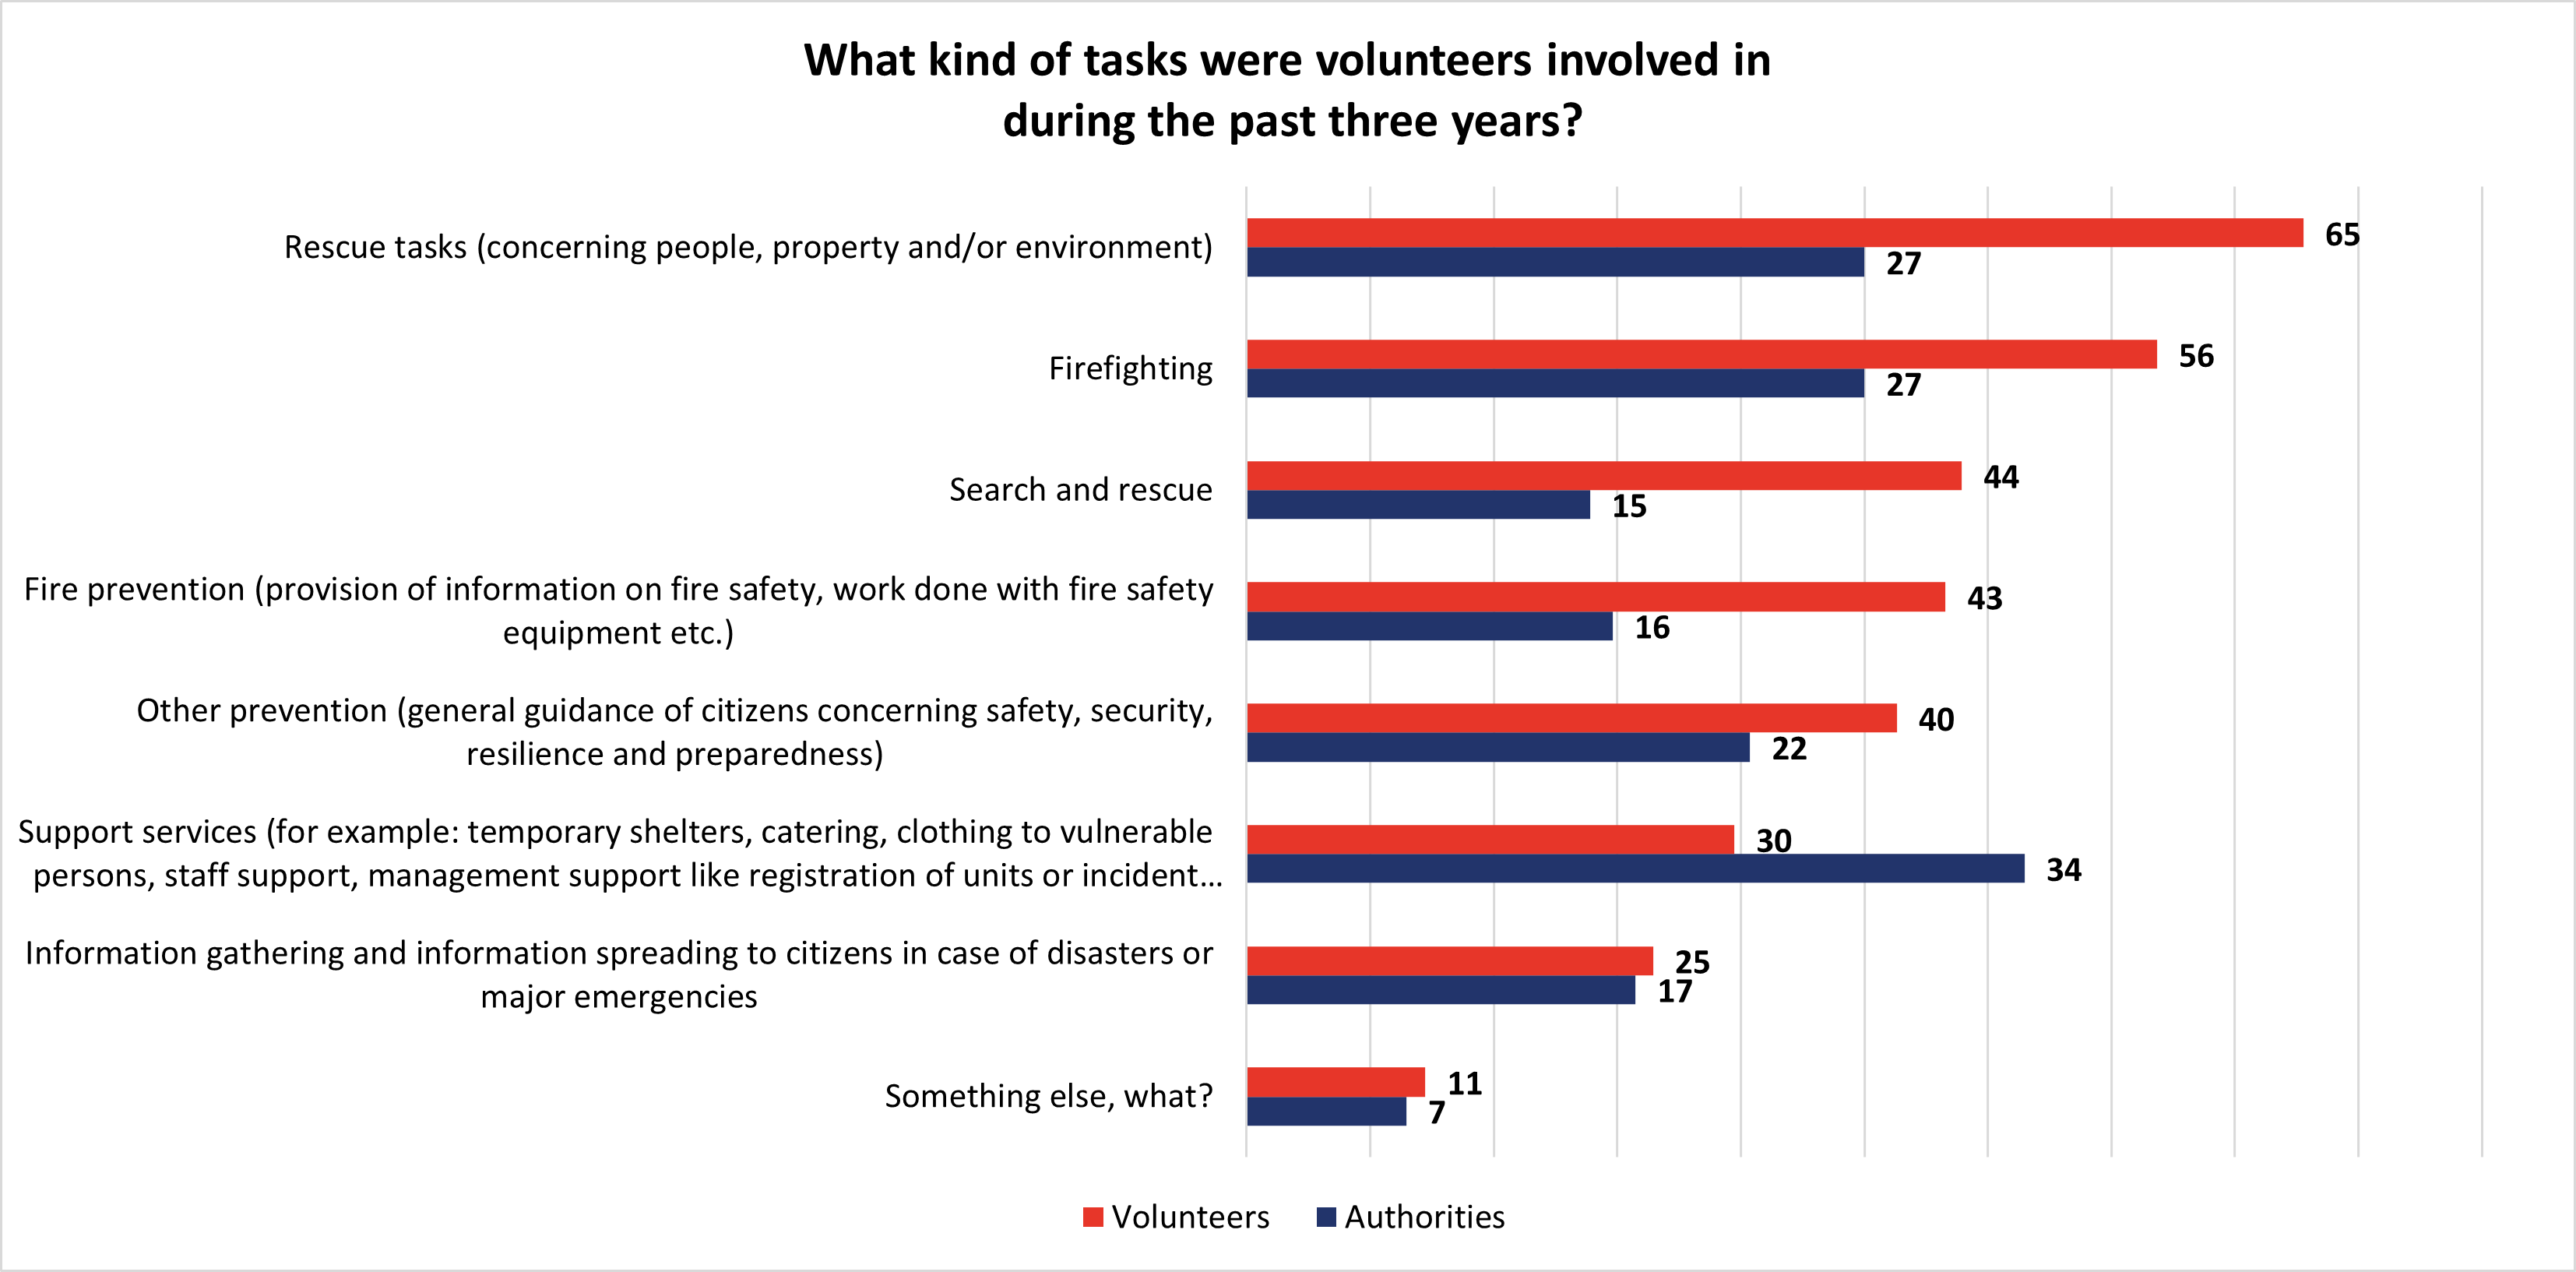 What kind of tasks were volunteers involved in during the past three years?